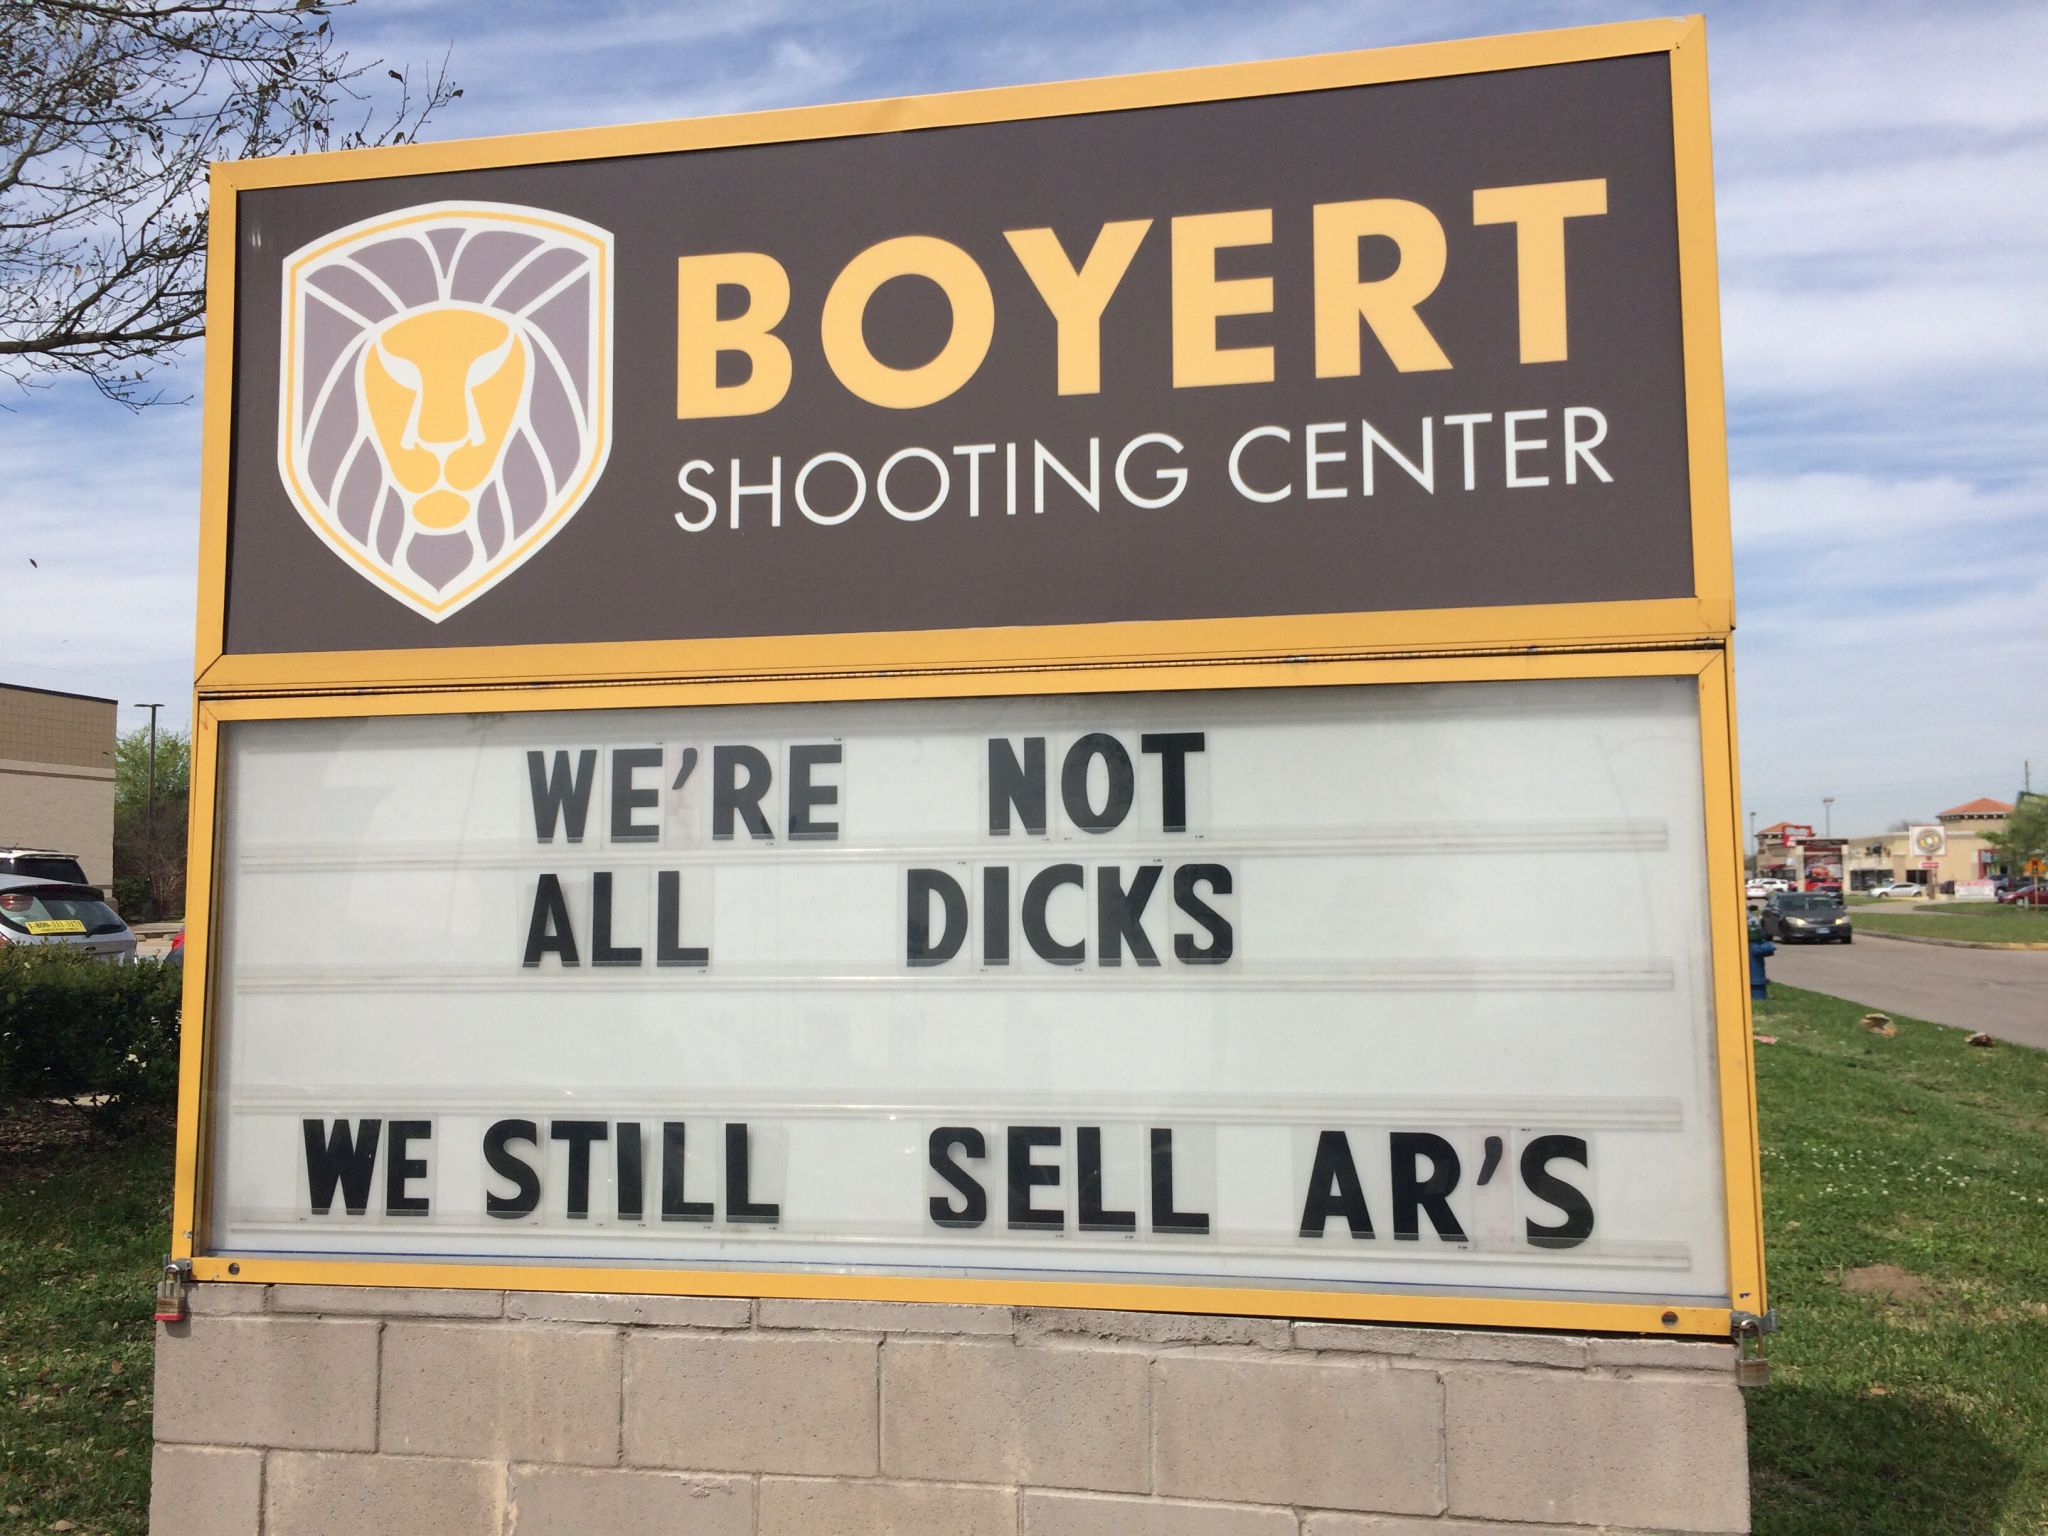 Katy gun range pokes fun at Dick's Sporting Goods' AR-15 policy on store marquee